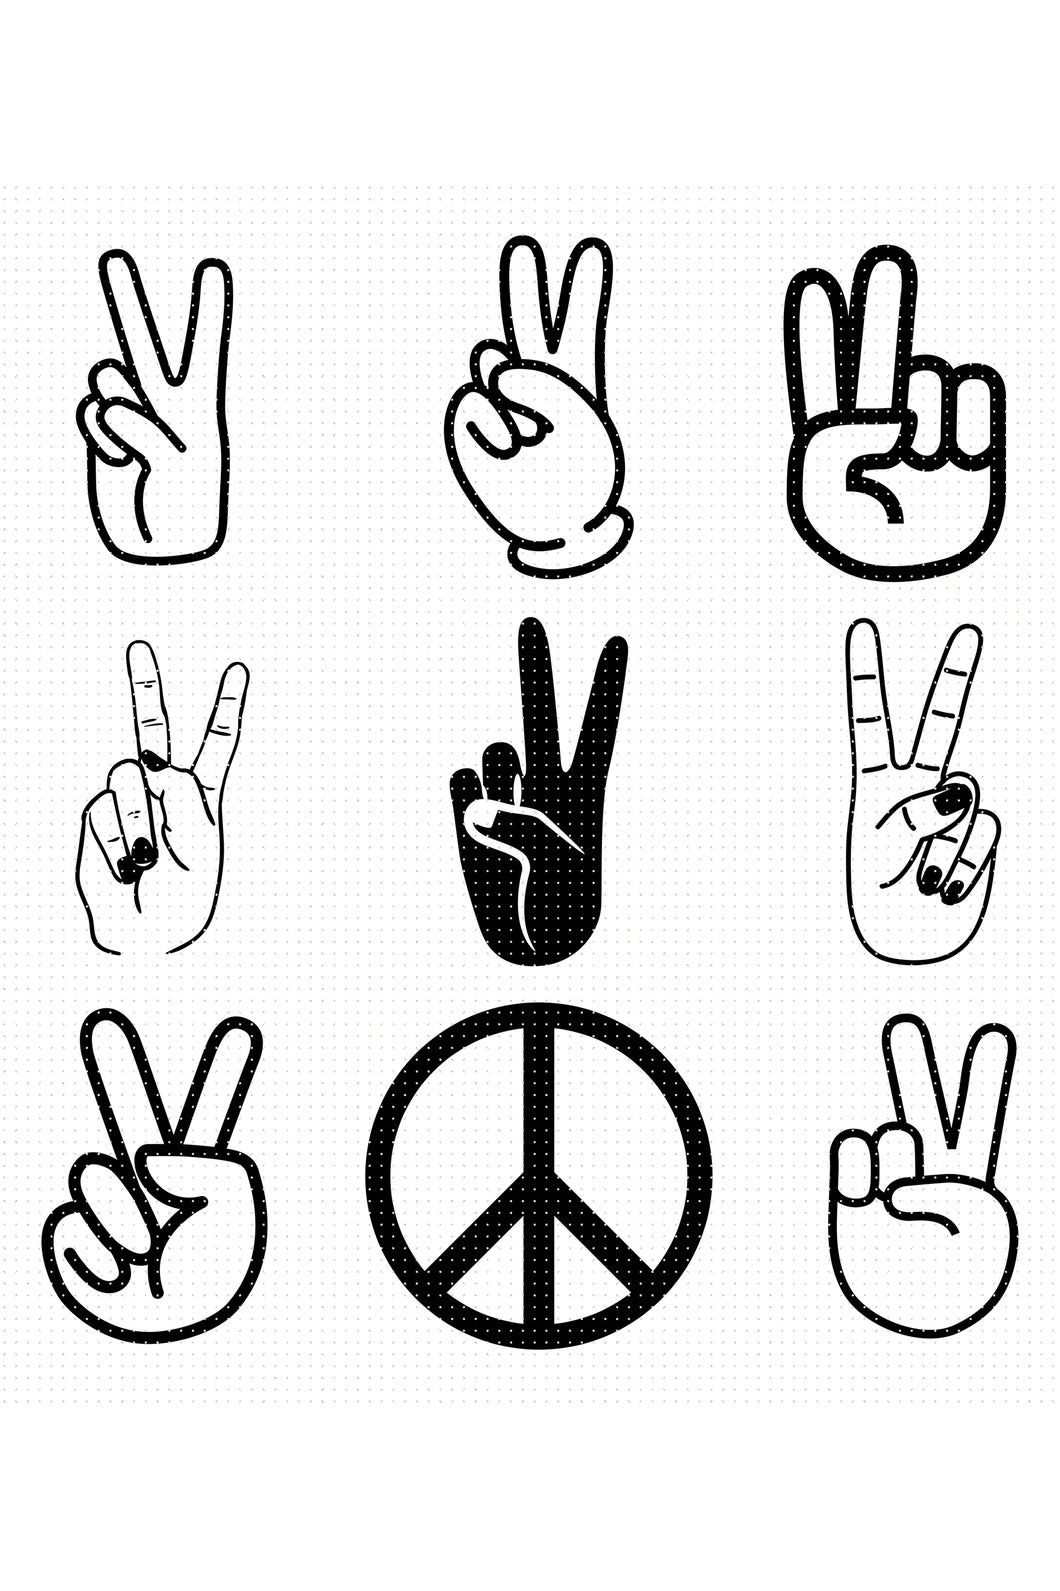 peace hand sign SVG, PNG, DXF, clipart, EPS, vector cut file instant download